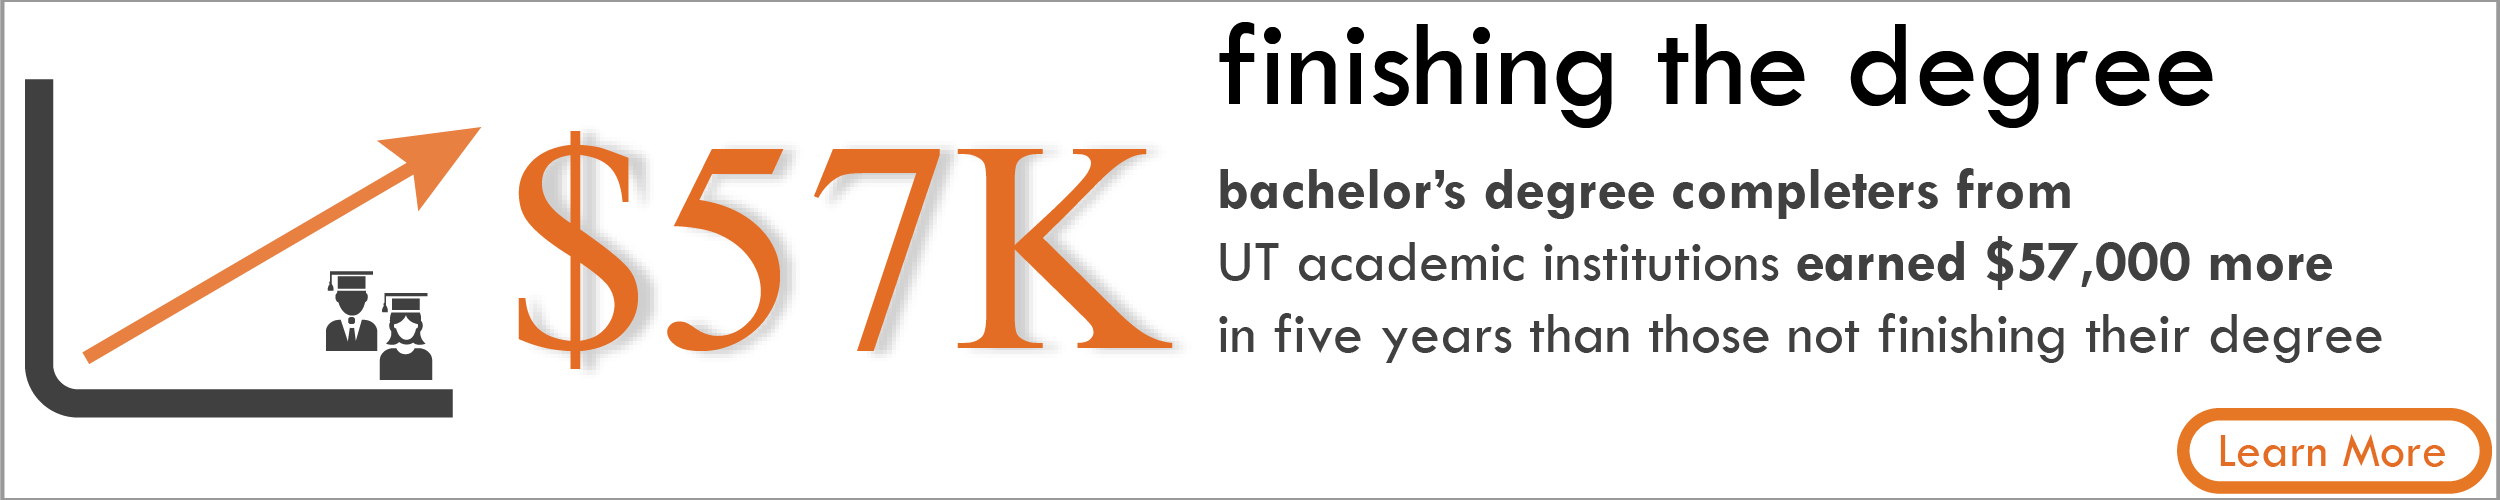 Finishing the Degree. Bachelor's degree completers from UT academic institutions earned $57,000 more in five years than those not finishing their degree. Learn more.